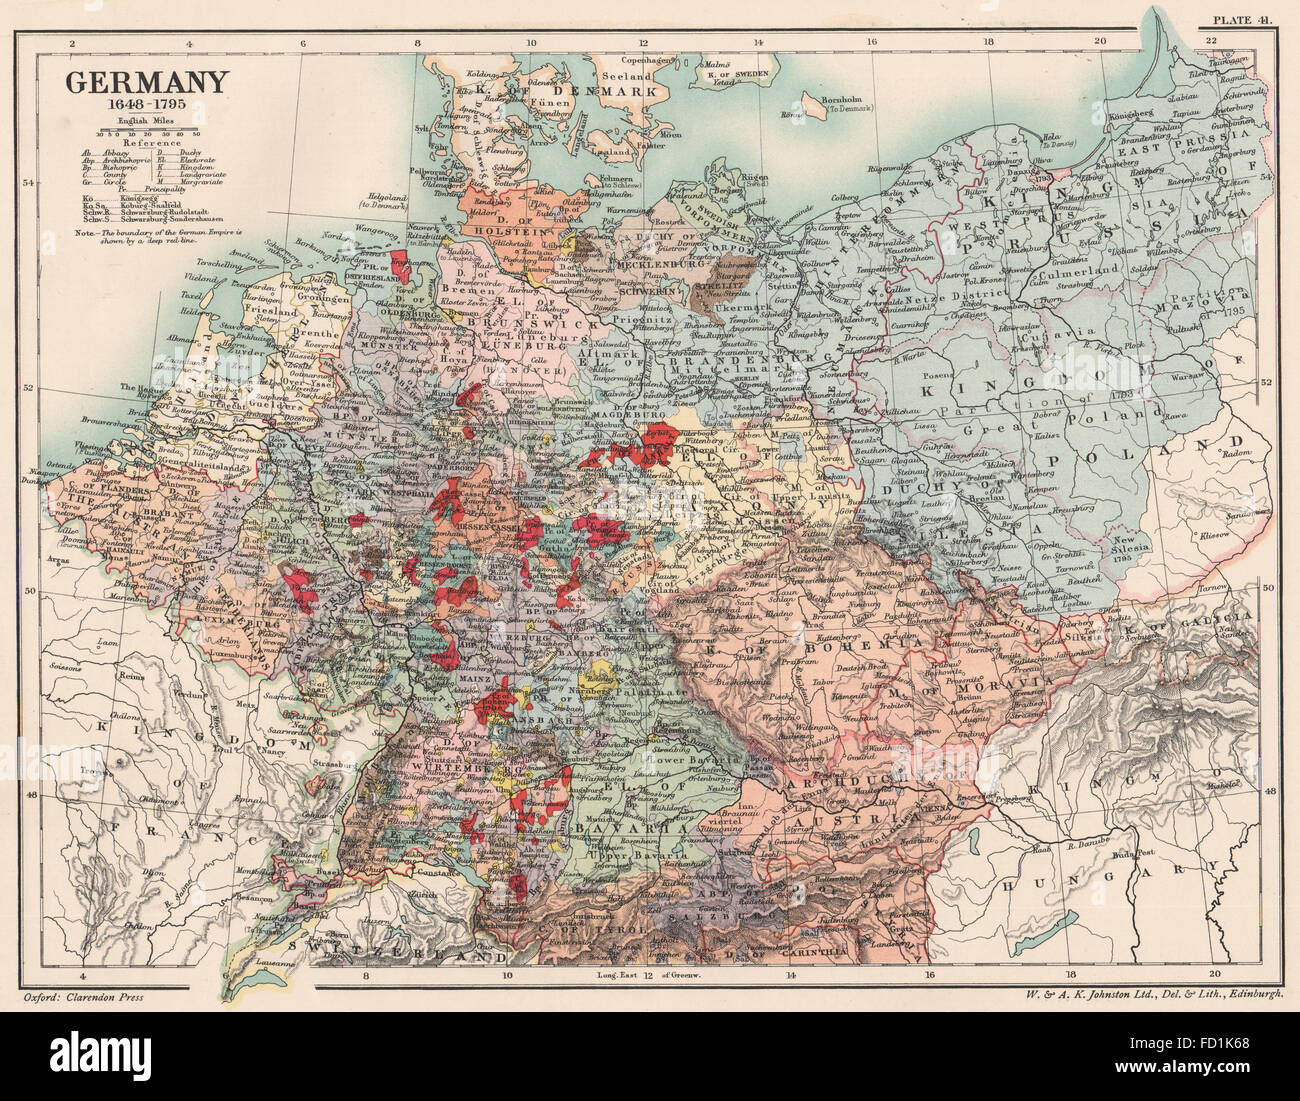 GERMANY 1648 1795 17th and 18th century Germany